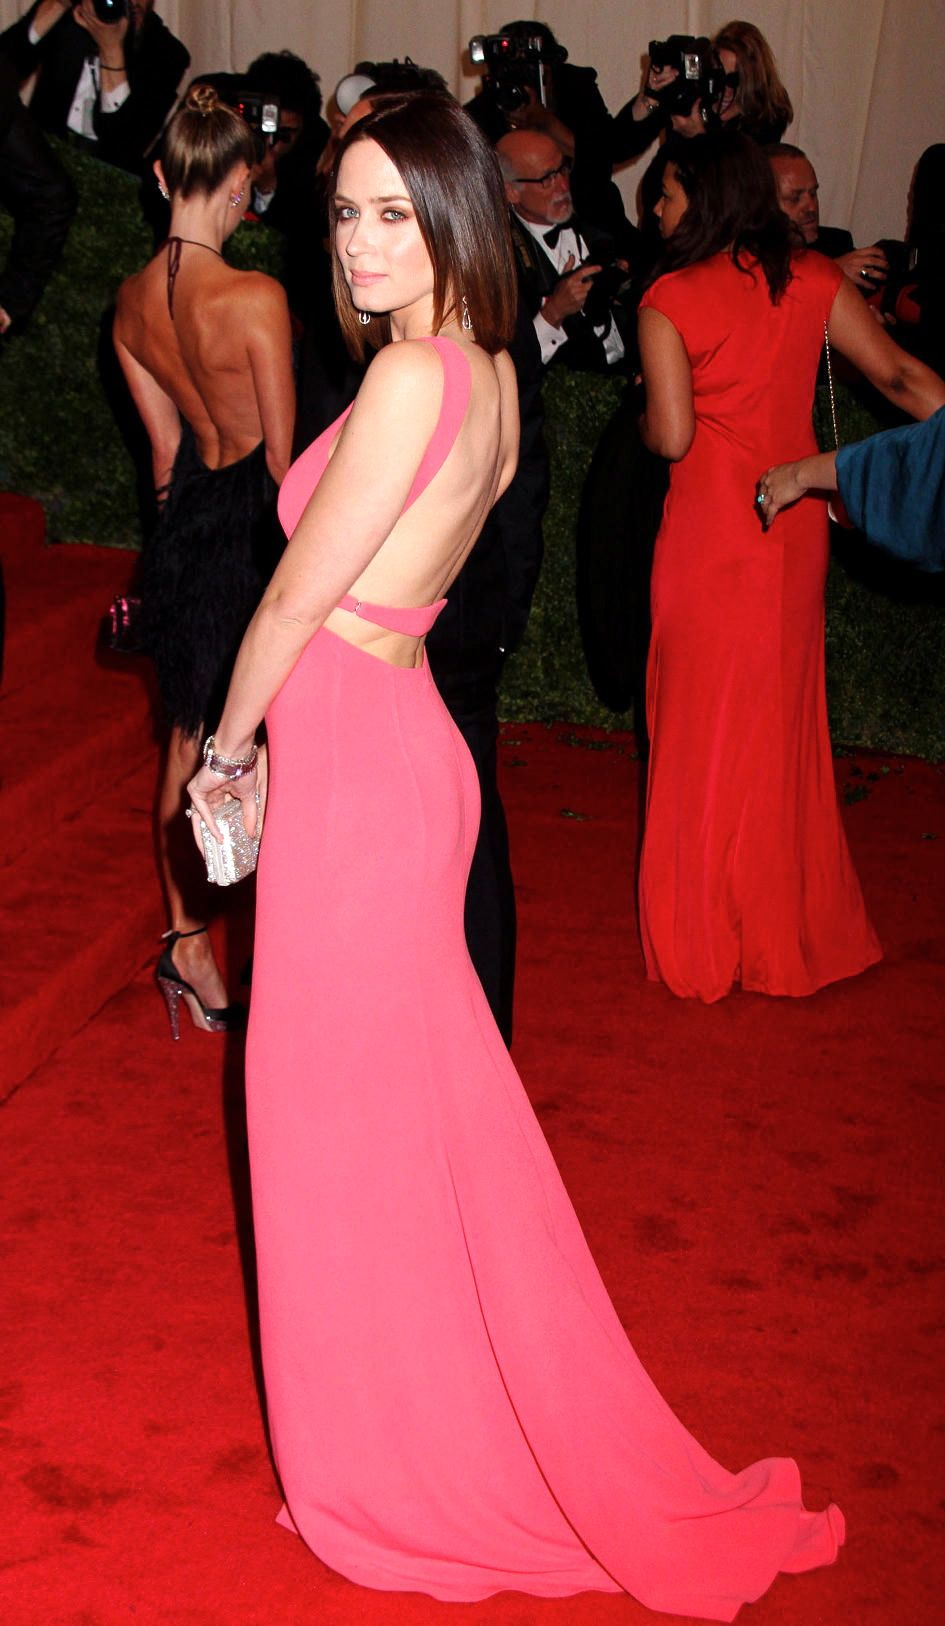 Emily Blunt booty in a pink gown on the red carpet  74d611ca0a77